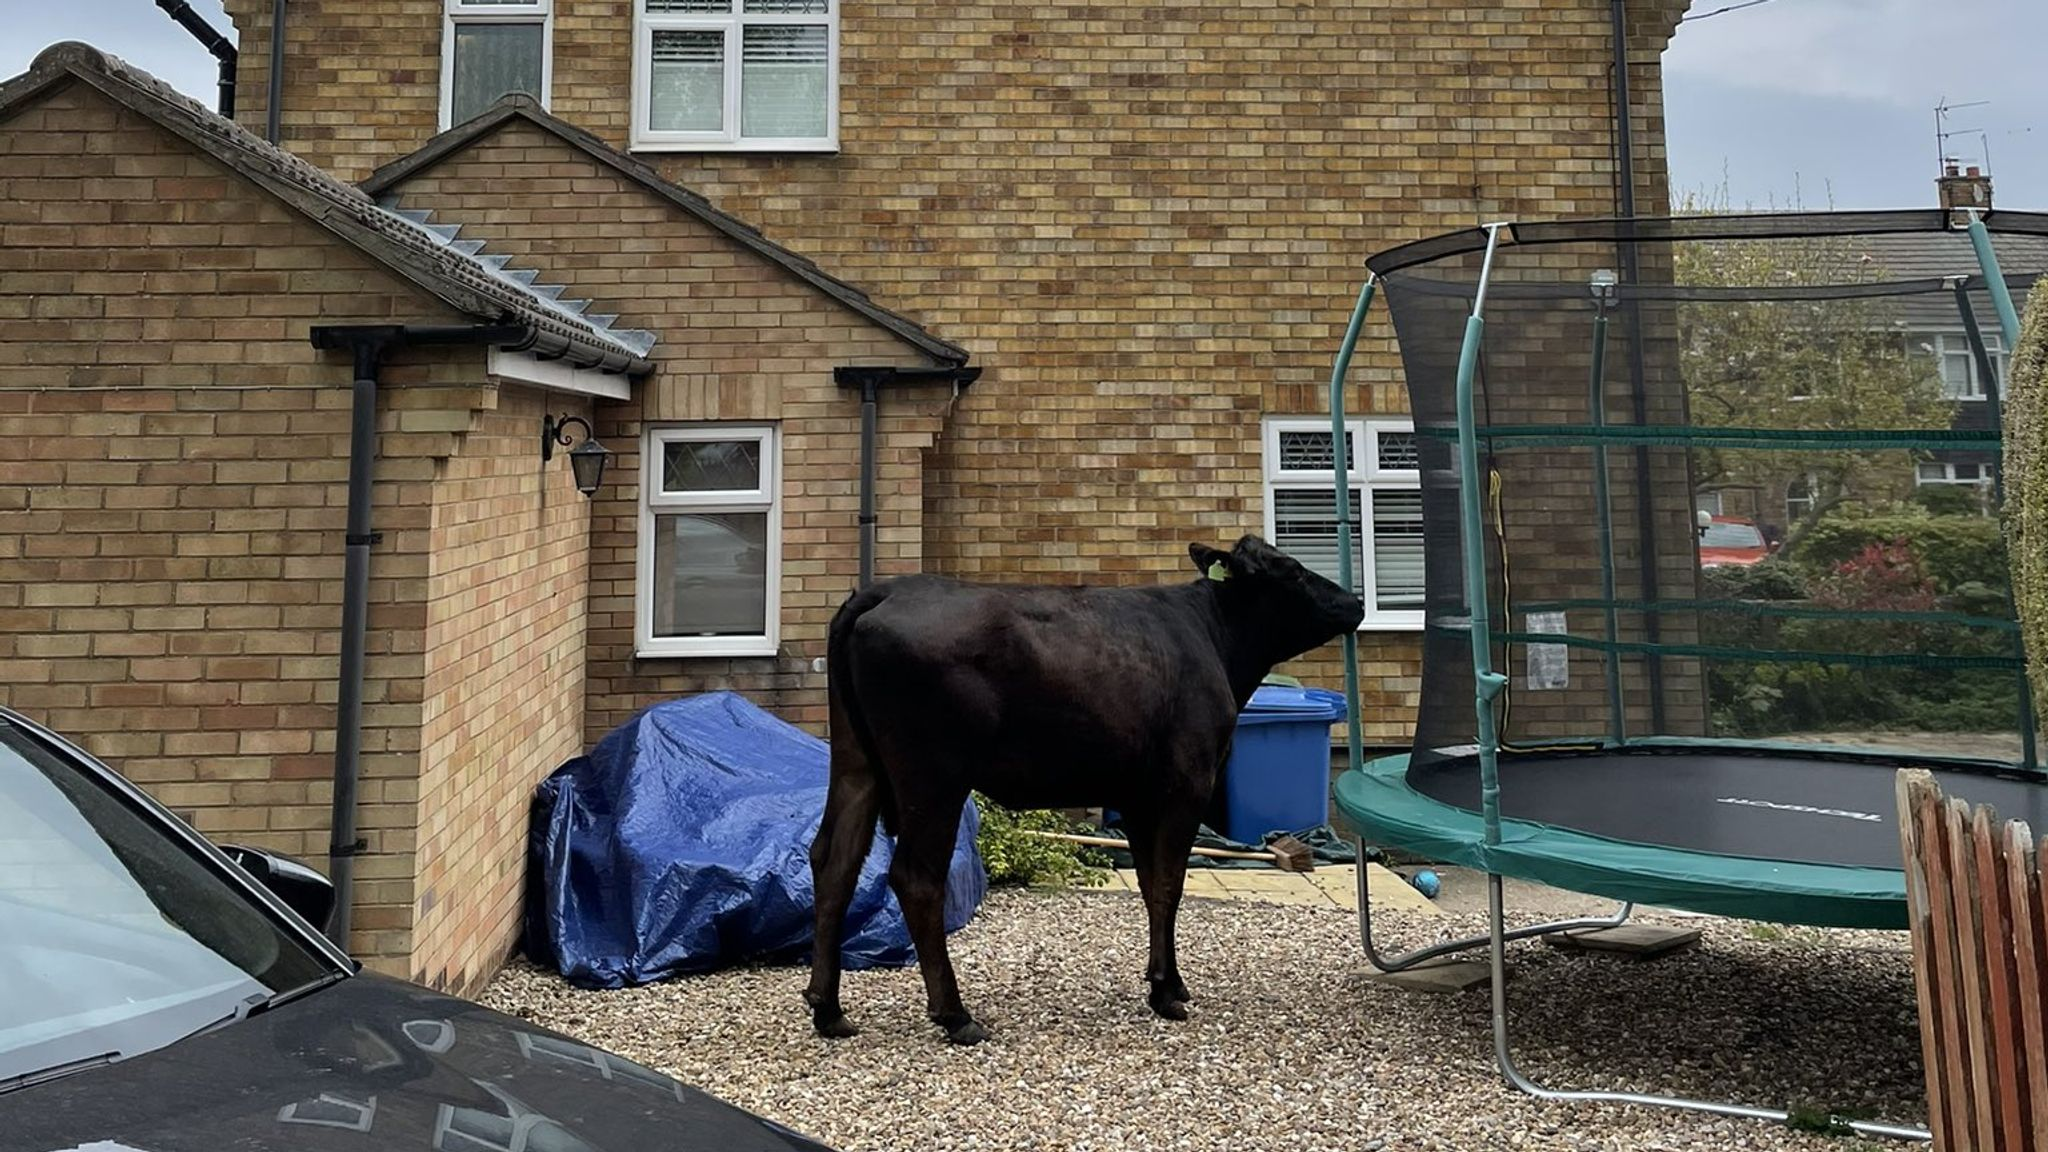 Quite fancy that: One bullock looked tempted to have a go on a trampoline